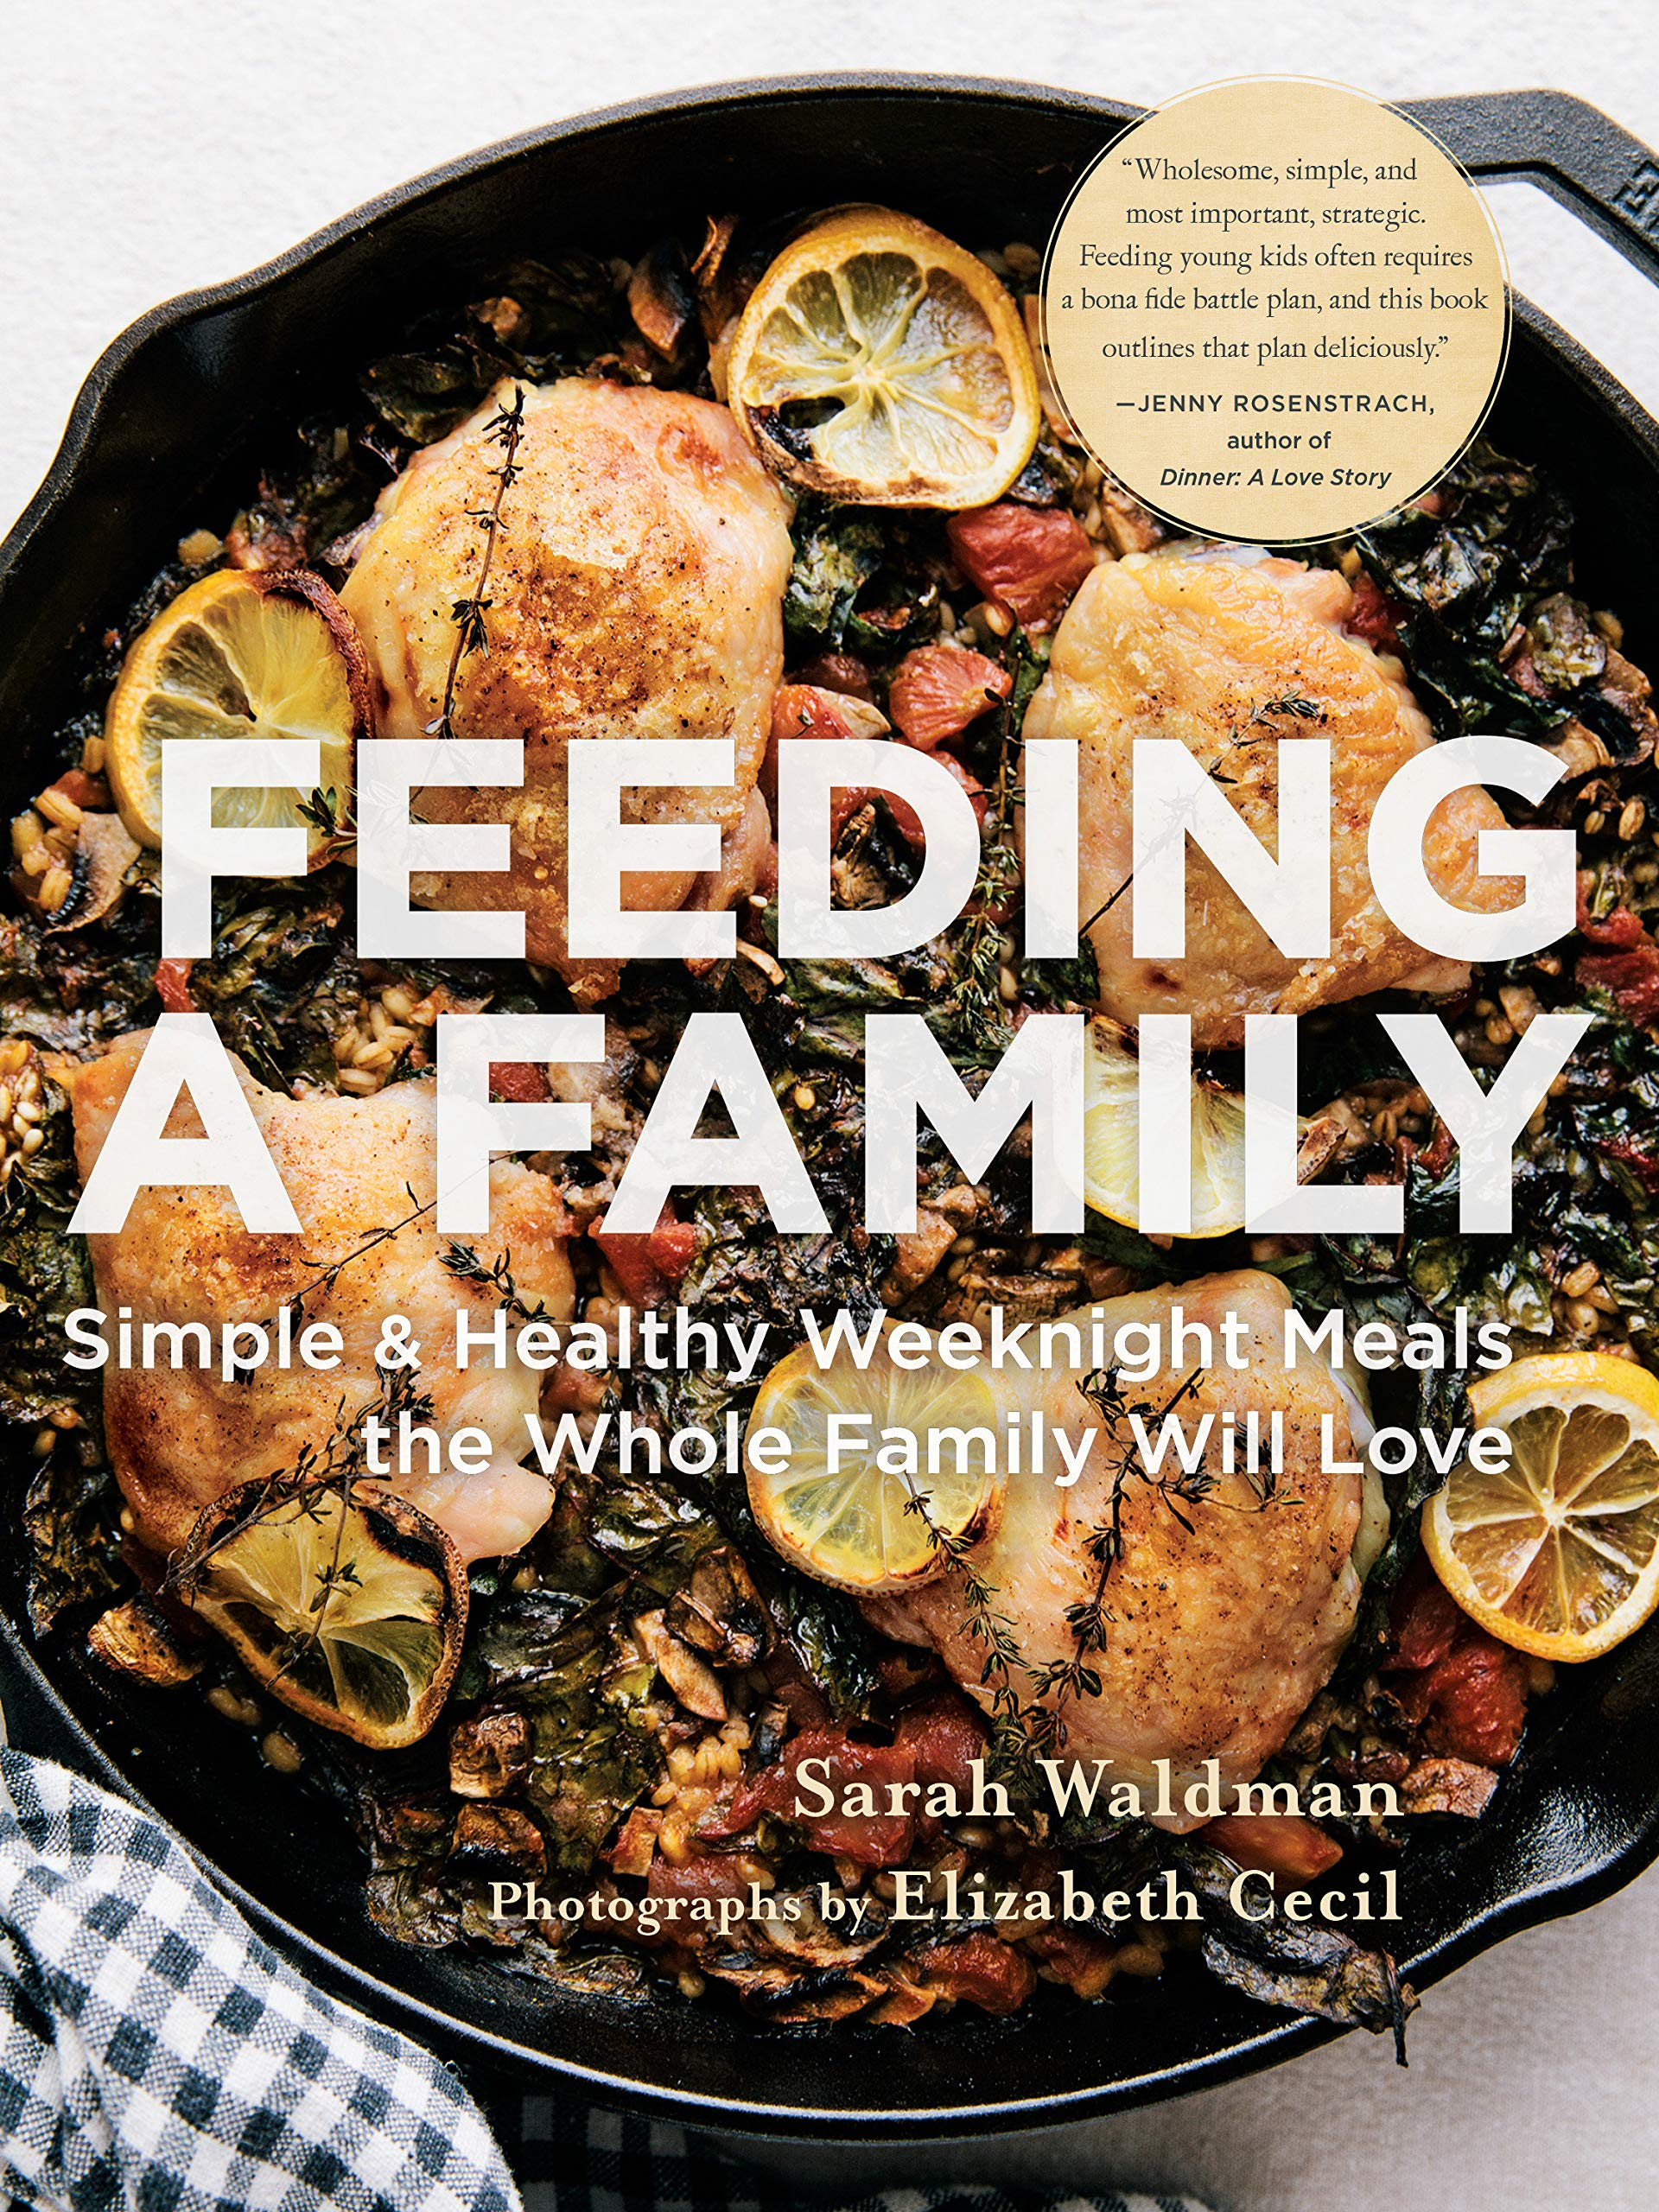 Feeding A Family Simple And Healthy Weeknight Meals The Whole Family Will Love Waldman Sarah 9781611807431 Amazon Com Books